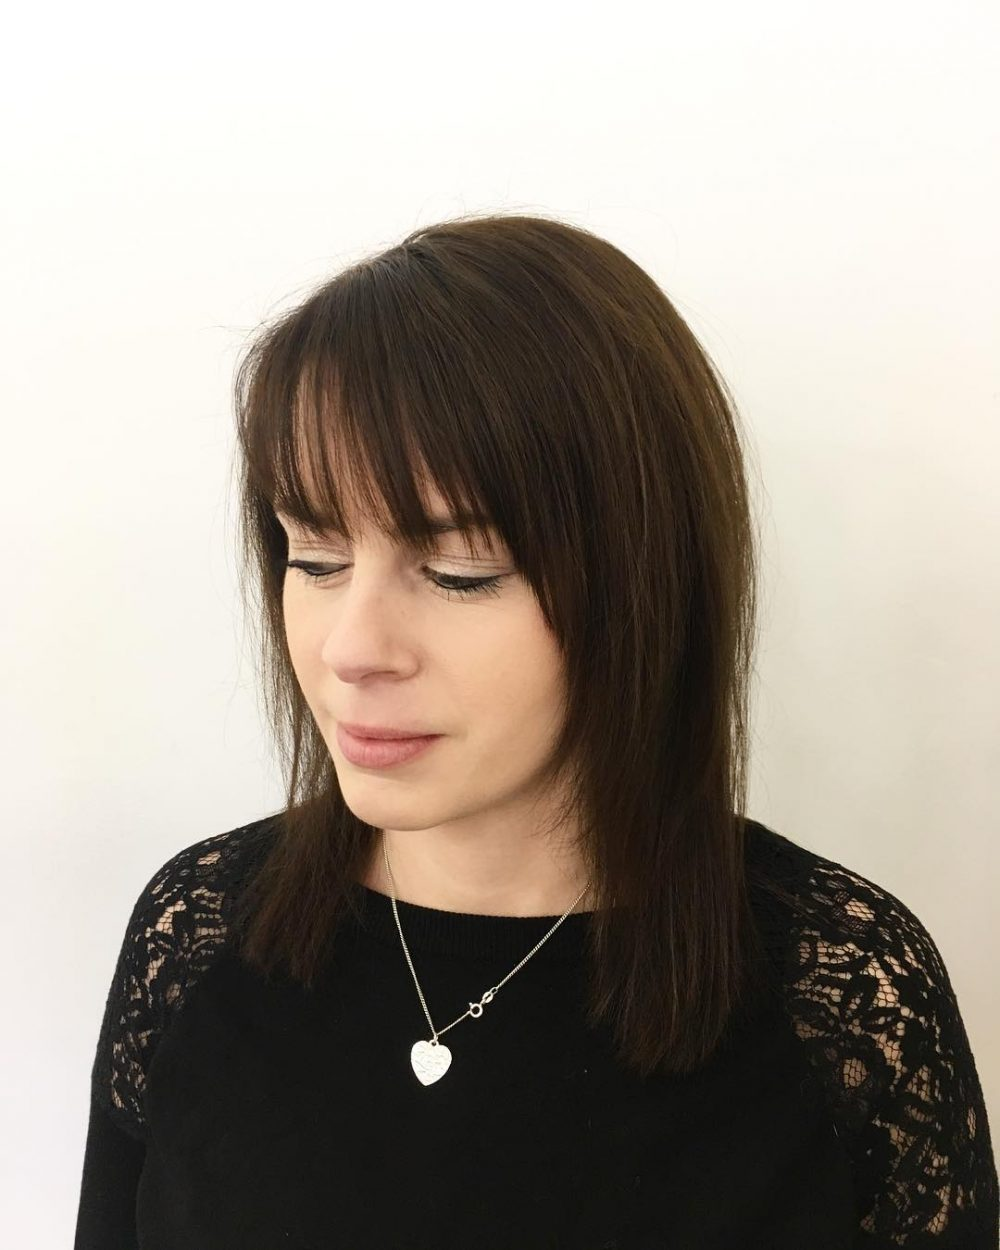 Feathered Lob hairstyle